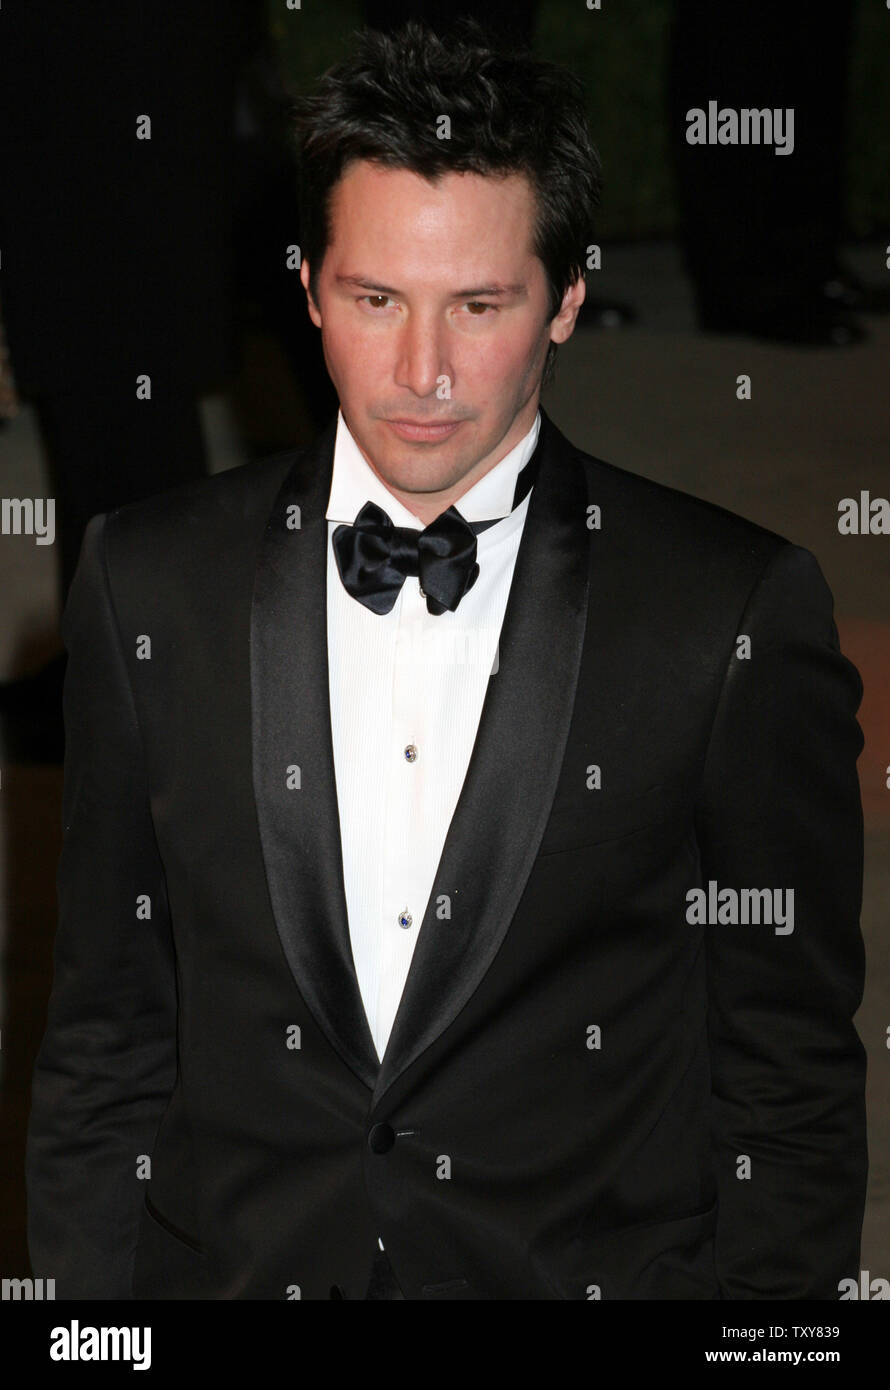 Actor Keanu Reeves Arrives On The Red Carpet At The Vanity Fair Oscar Party At Morton S In West Hollywood California On March 5 2006 Upi Photo David Silpa Stock Photo Alamy